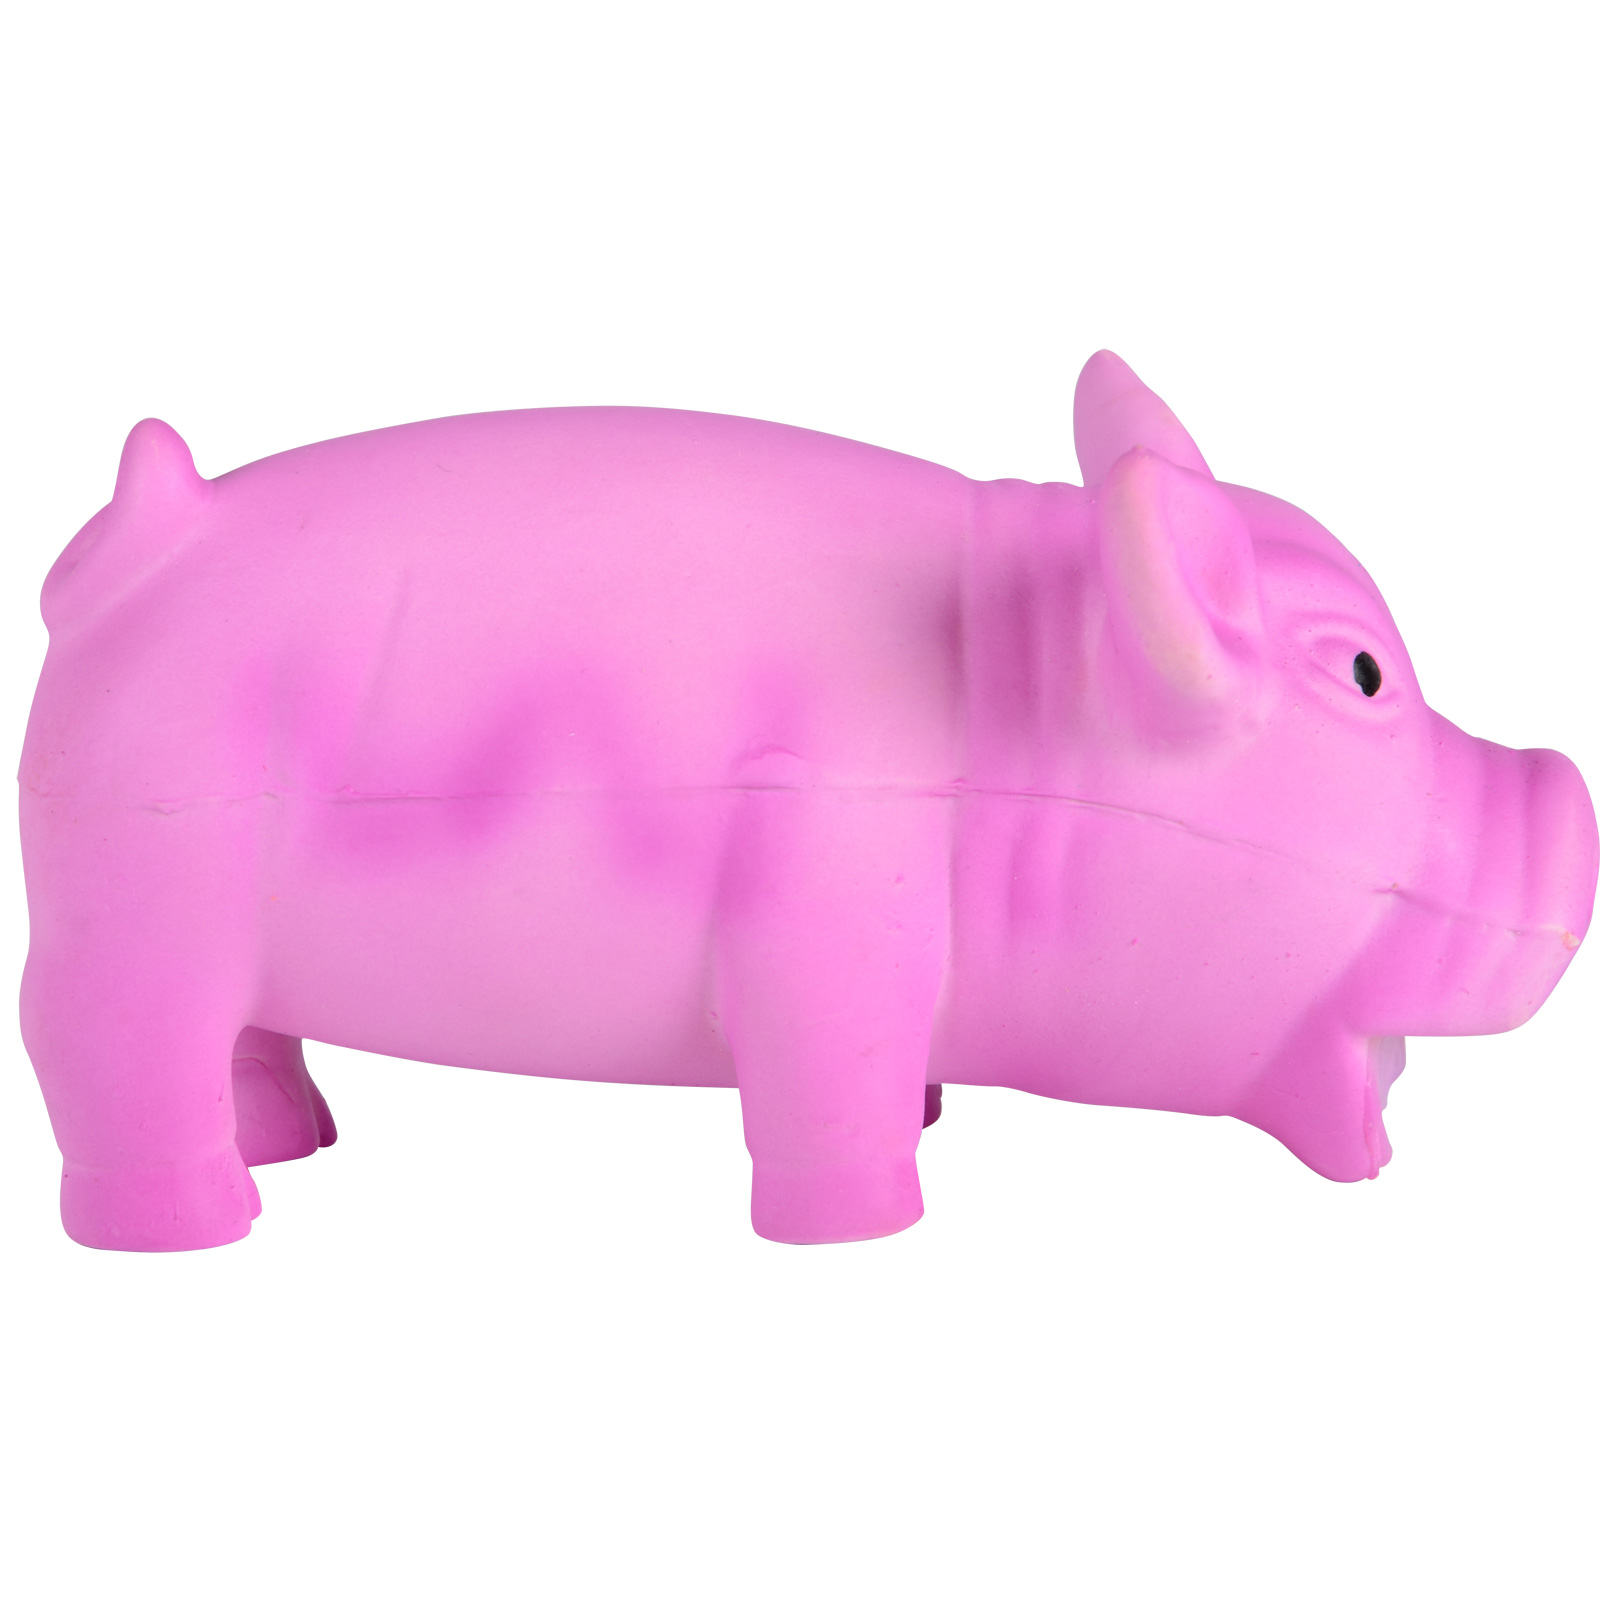 Pink Dog Toy : Puppy dog pet toy latex pink pig with realistic